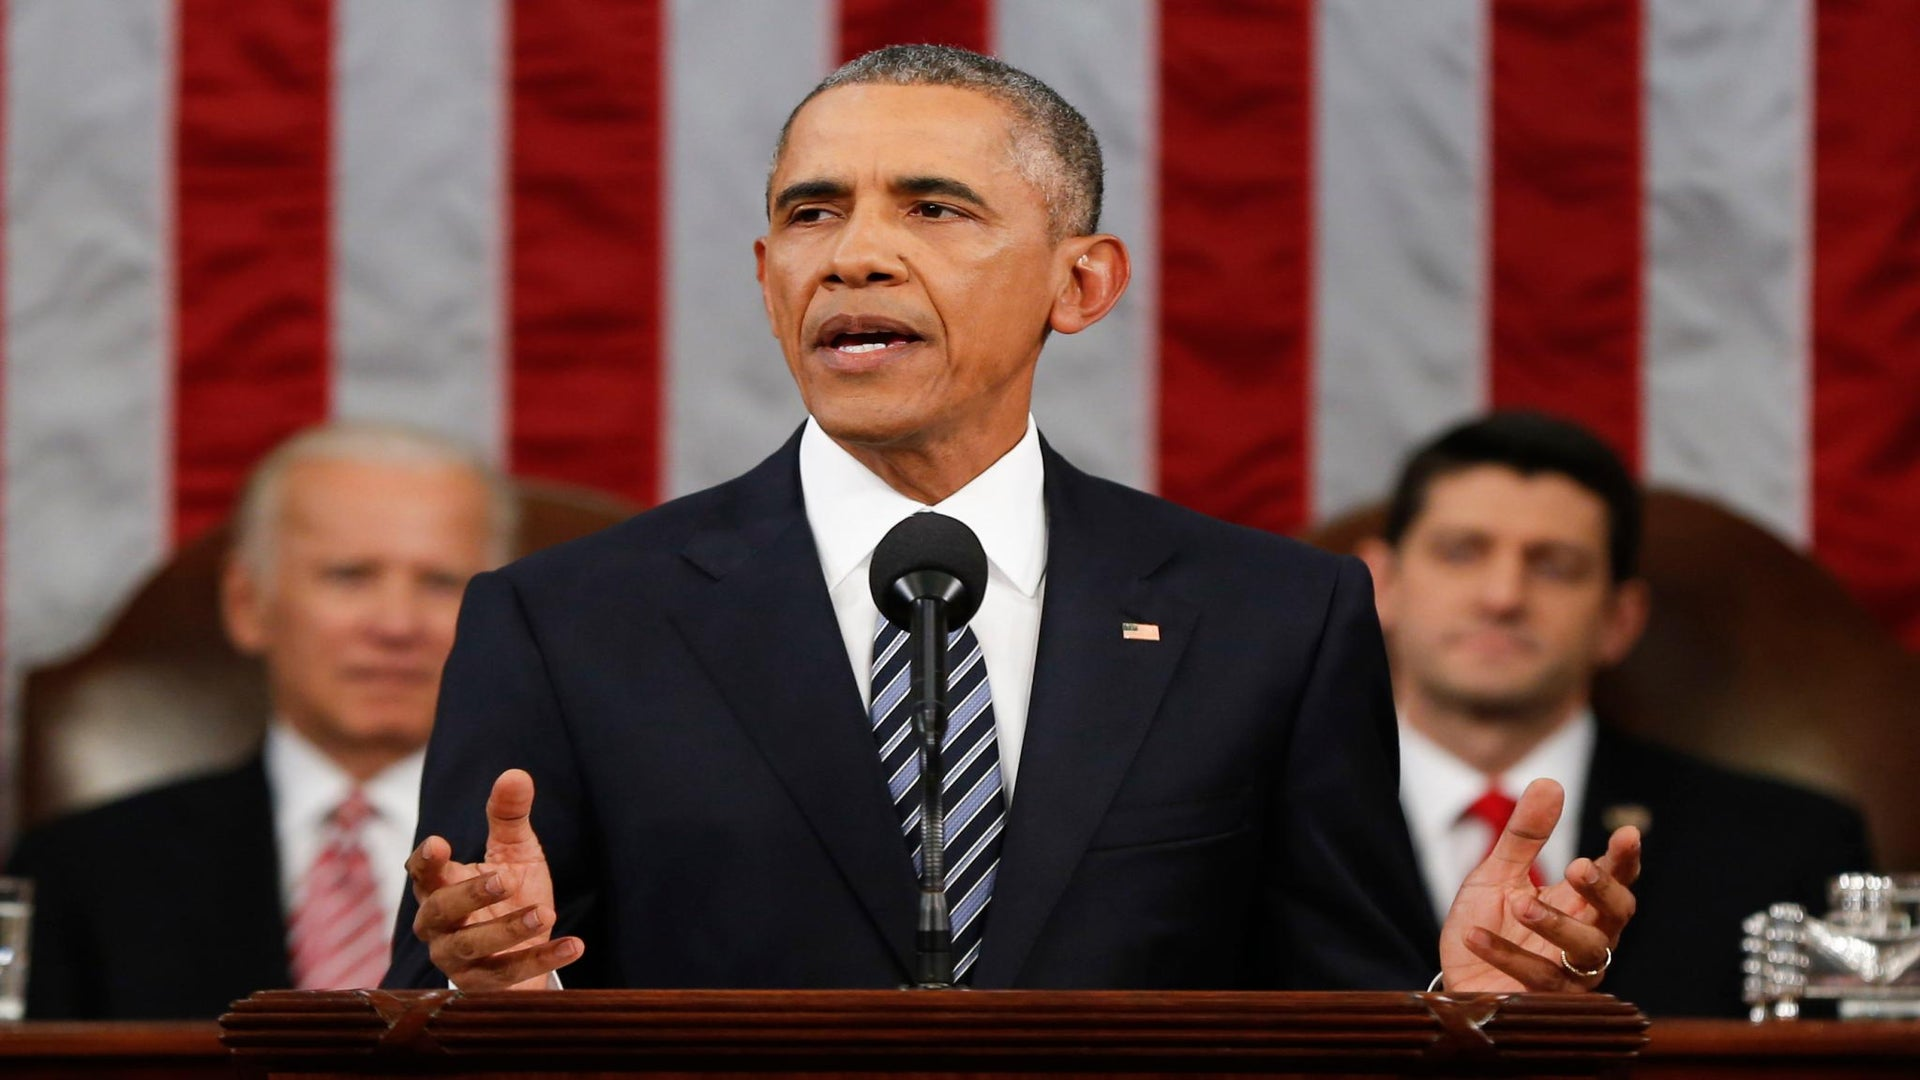 Did You Miss President Obama's State of the Union Address? Here's Everything You Need to Know